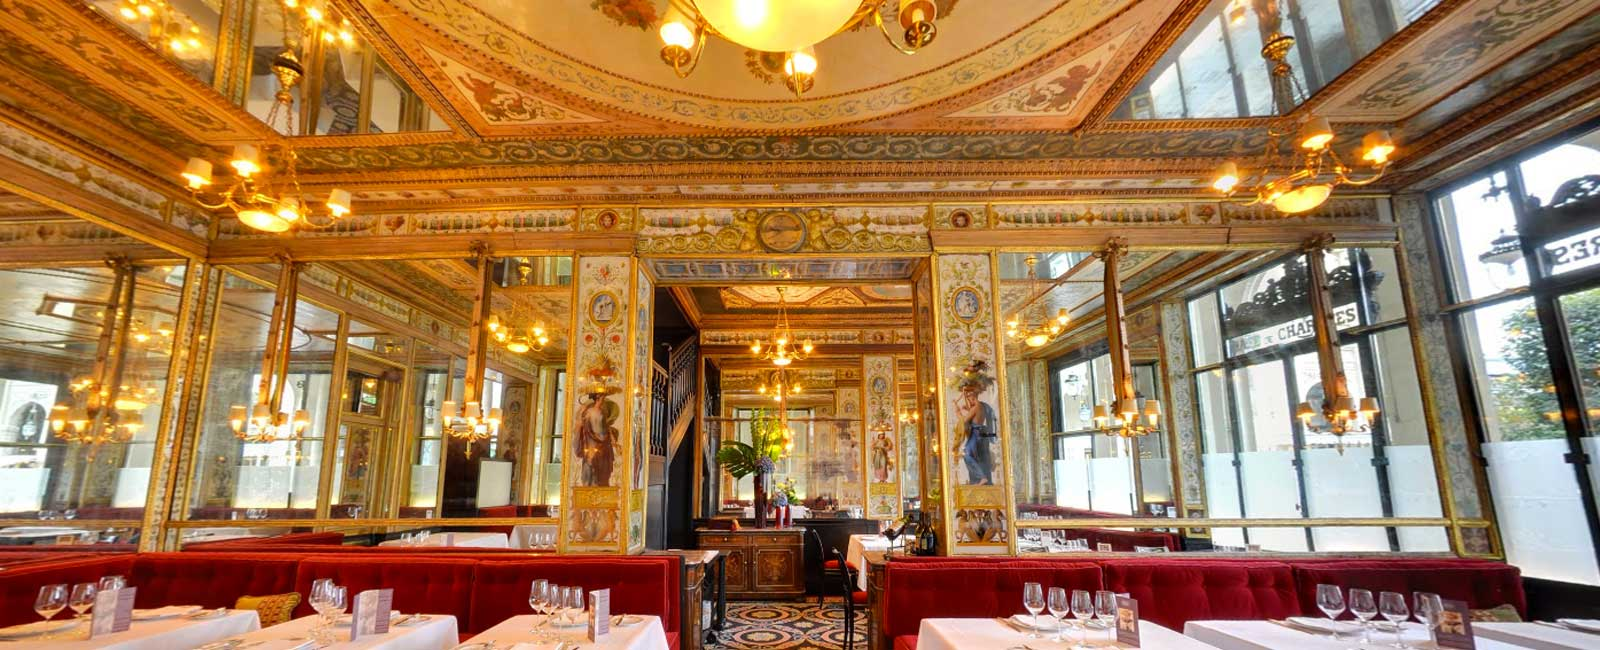 Cafe Restaurant La Cuisine  Paris